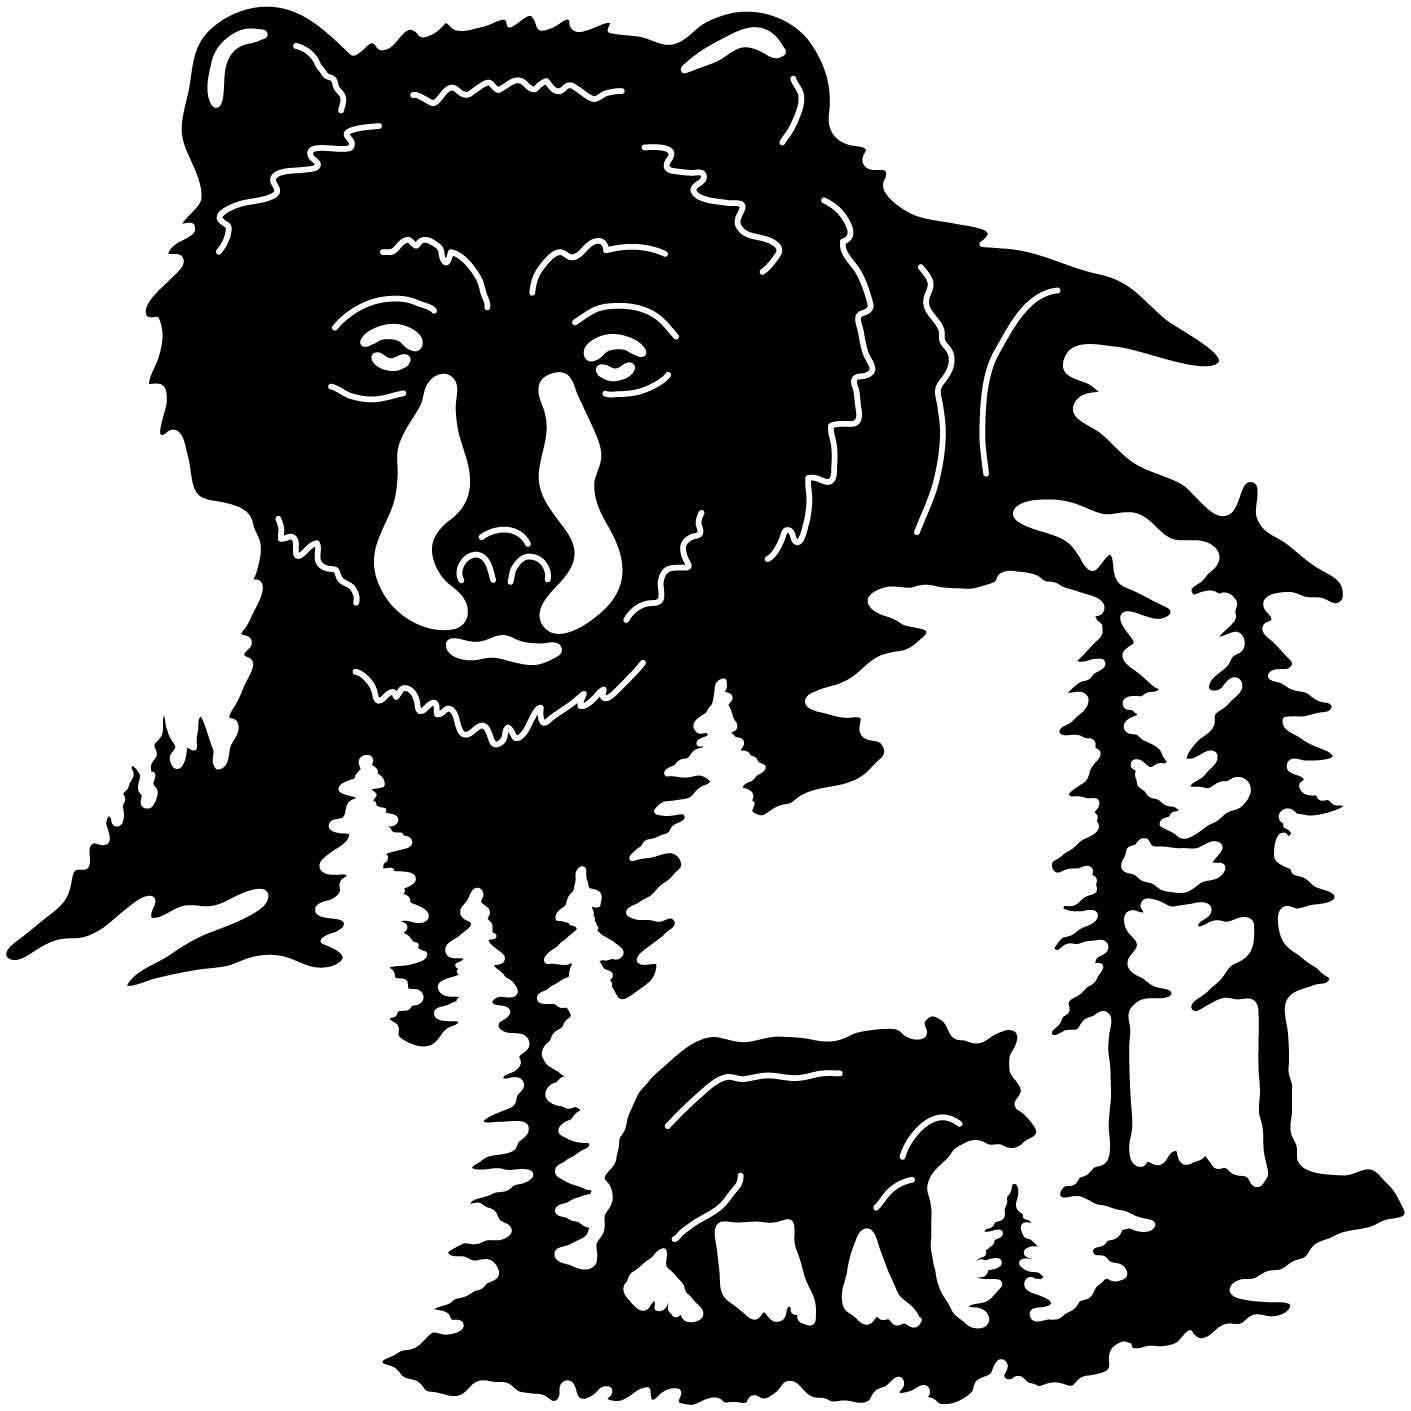 Chic bear outdoor clipart black and white vector freeuse stock Bear Face and trees | DXFforCNC.com - DXF files Cut Ready CNC ... vector freeuse stock